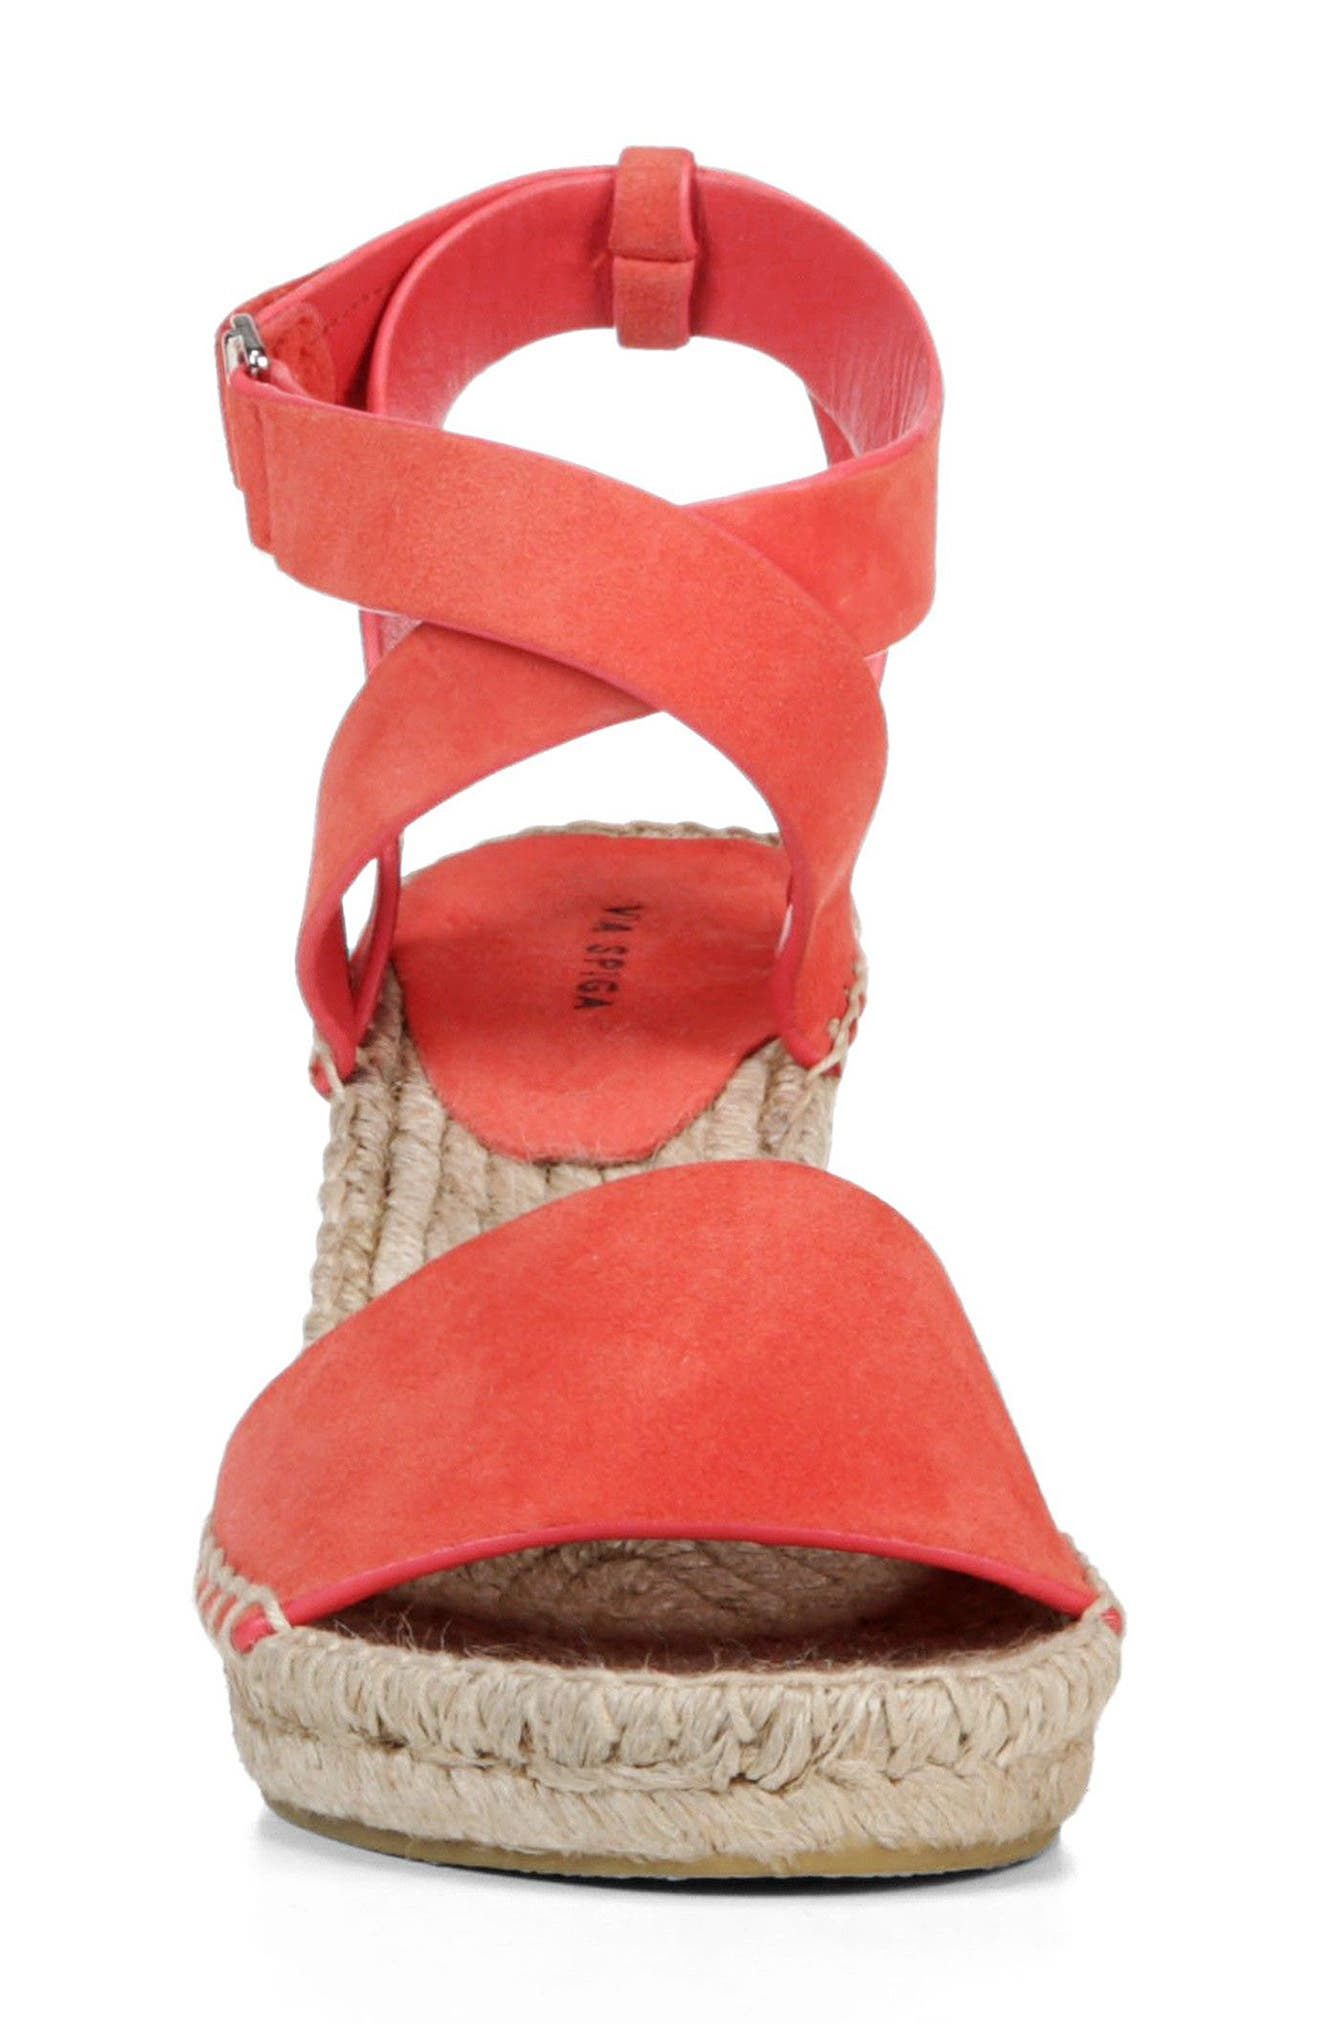 Nevada Espadrille Wedge Sandal,                             Alternate thumbnail 4, color,                             Poppy Red Suede